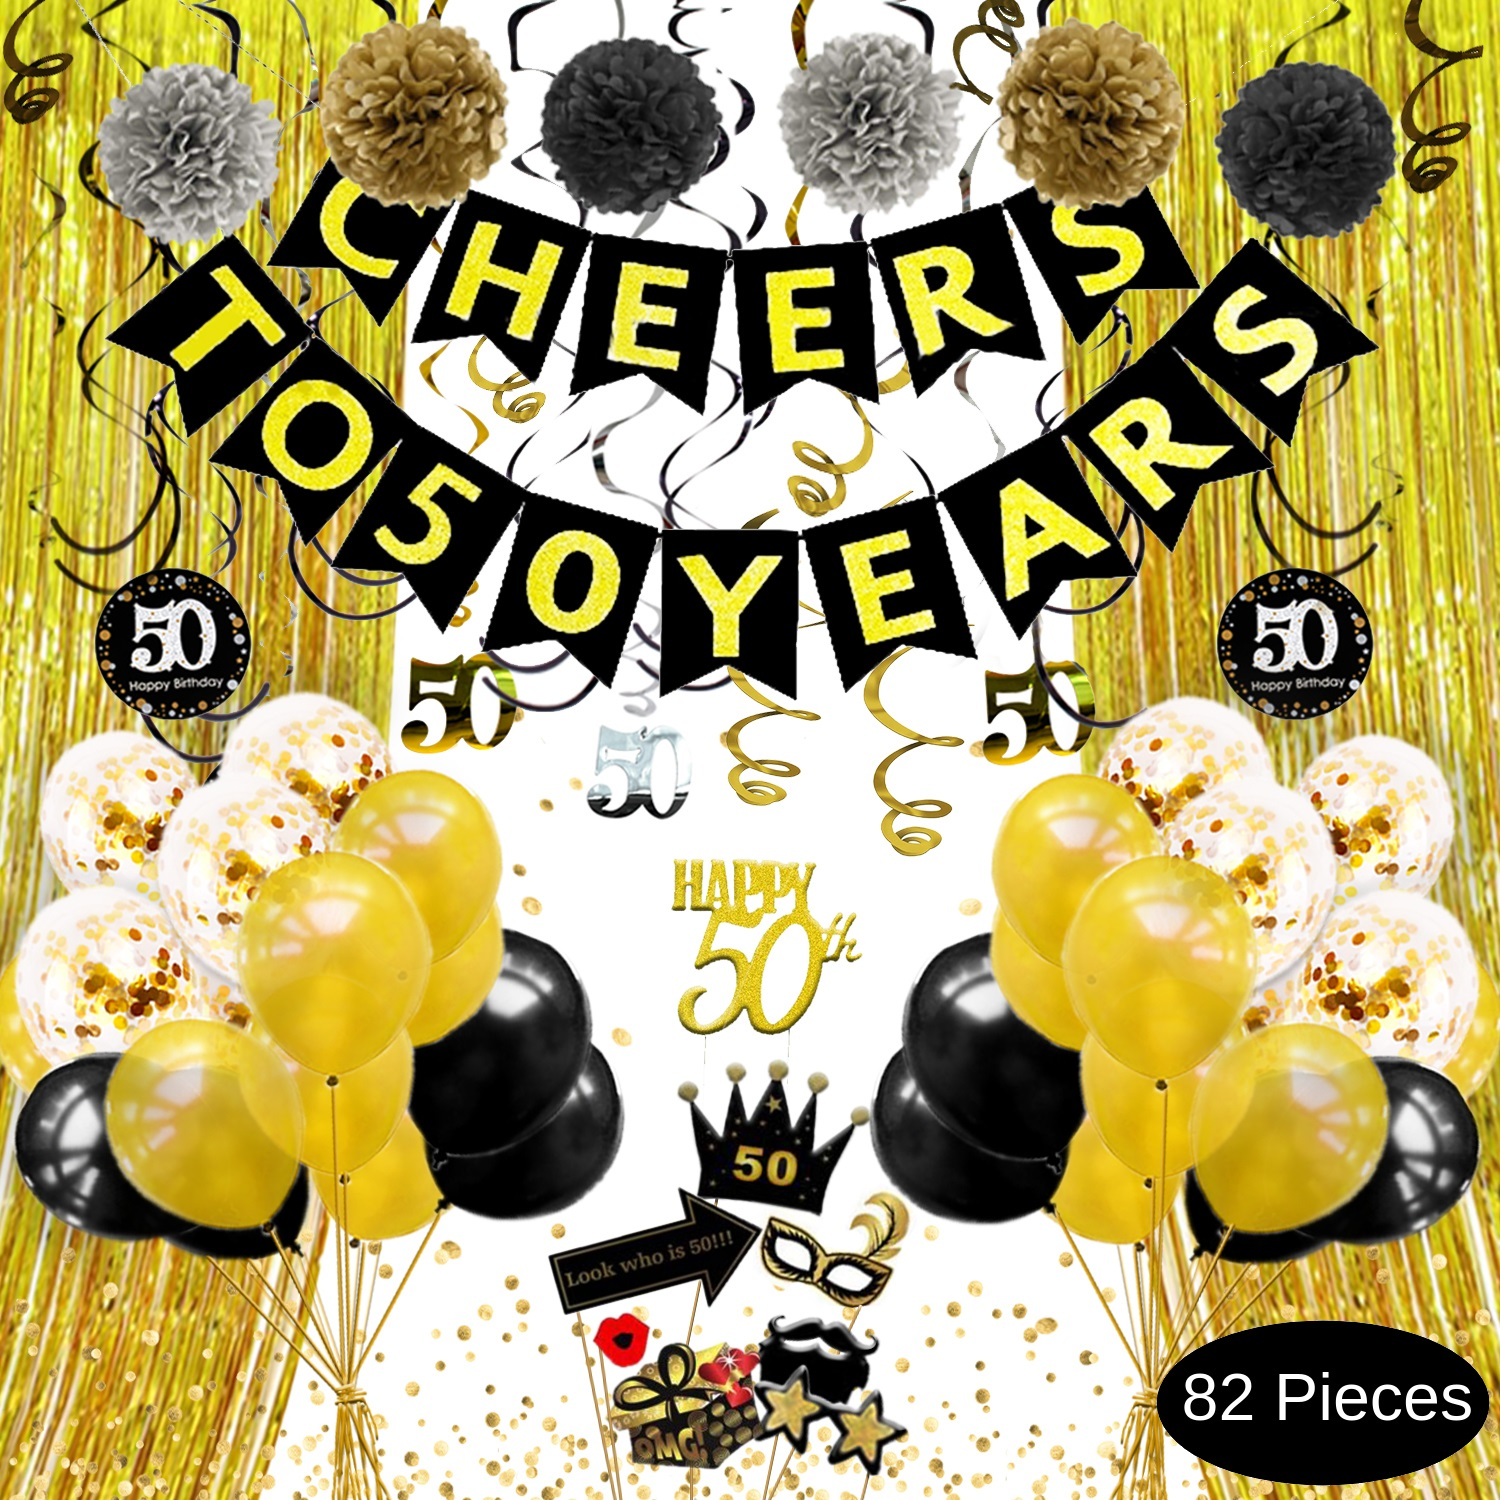 50th Birthday Decorations For Men Women Cheers To 50 Years Banner Gold Black Silver Pom Poms Hanging Swirls Cake Topper Photo Props Backdrop Balloons Confetti 50th Anniversary Decorations Rizell